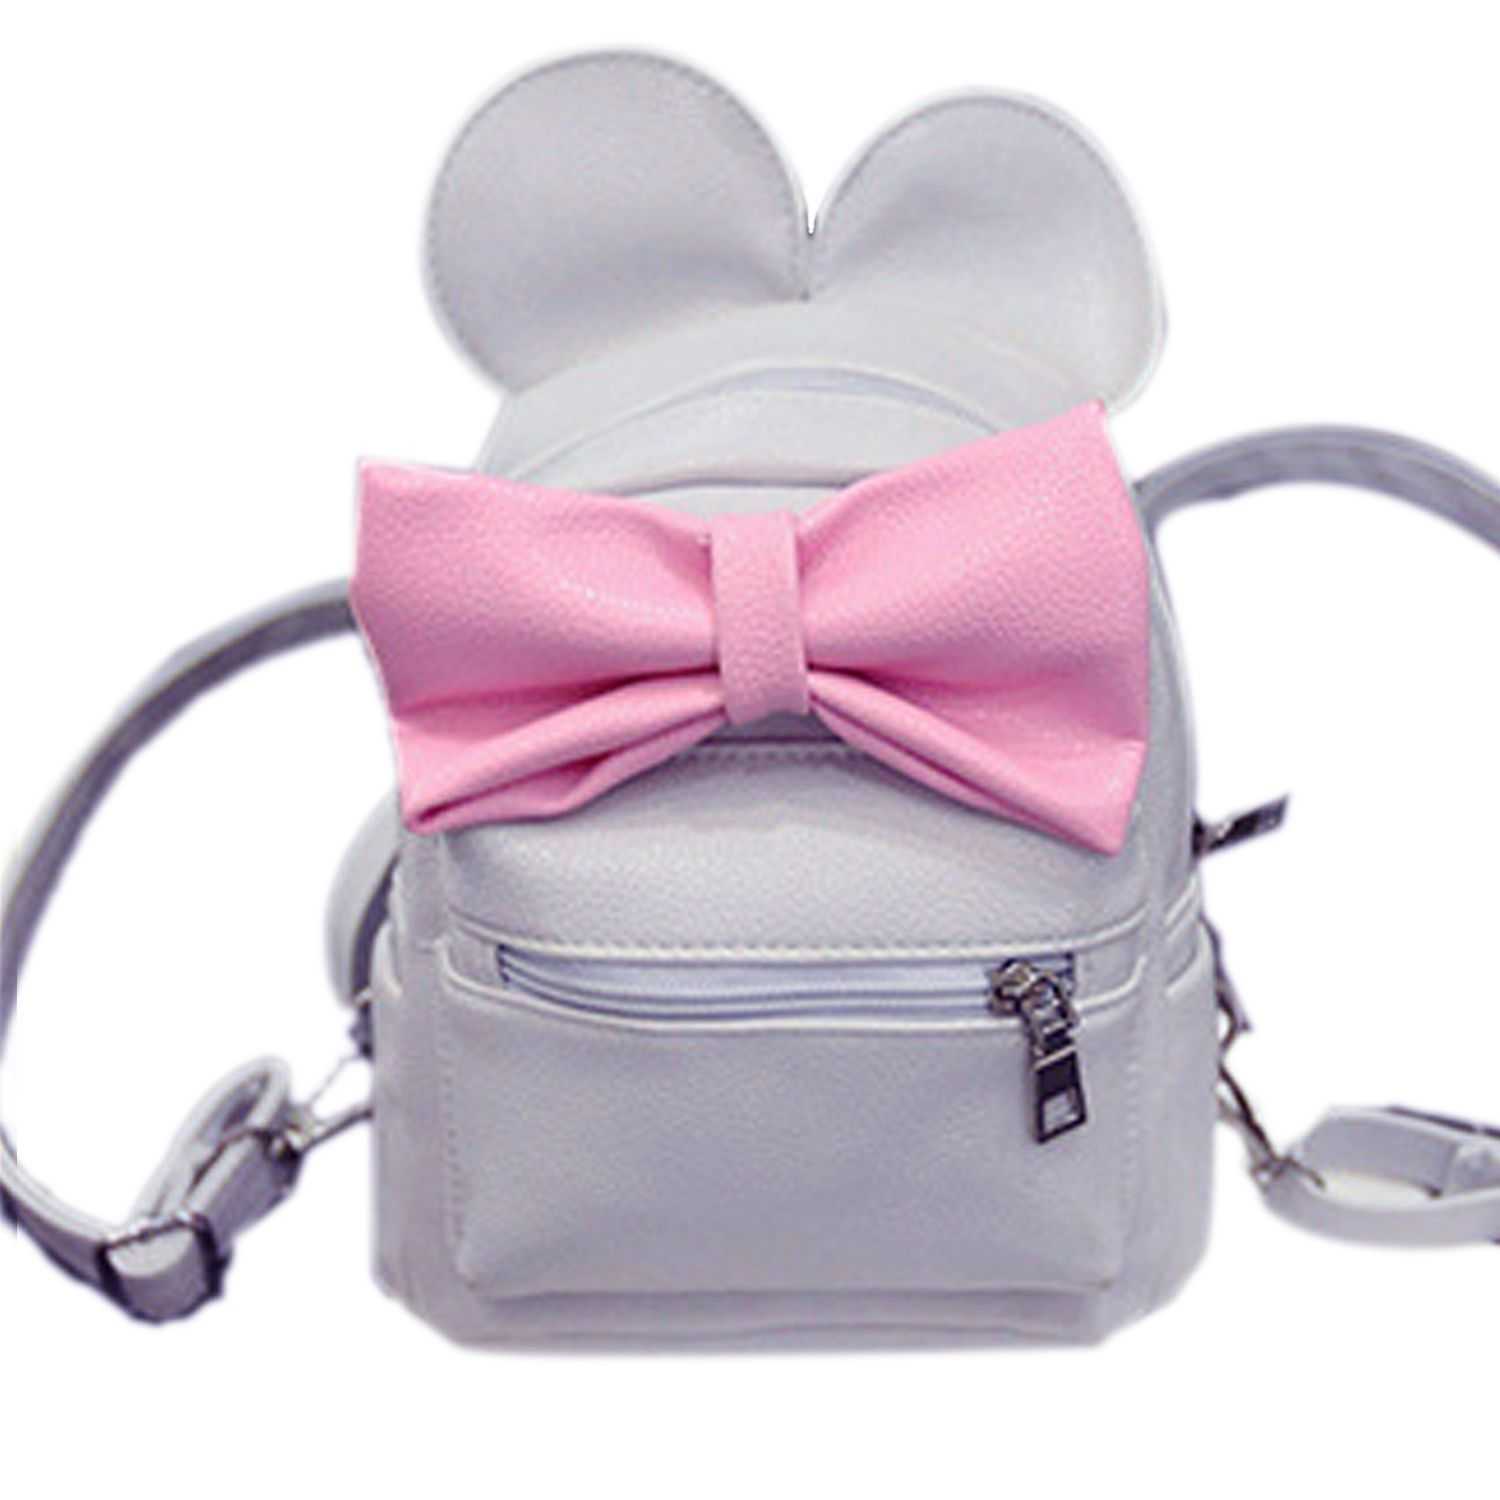 6d28910a3 Sunshine Fashion Girls Cute Synthetic Leather Bow Small Travel Backpack  School Bag-Gray. updating Prices